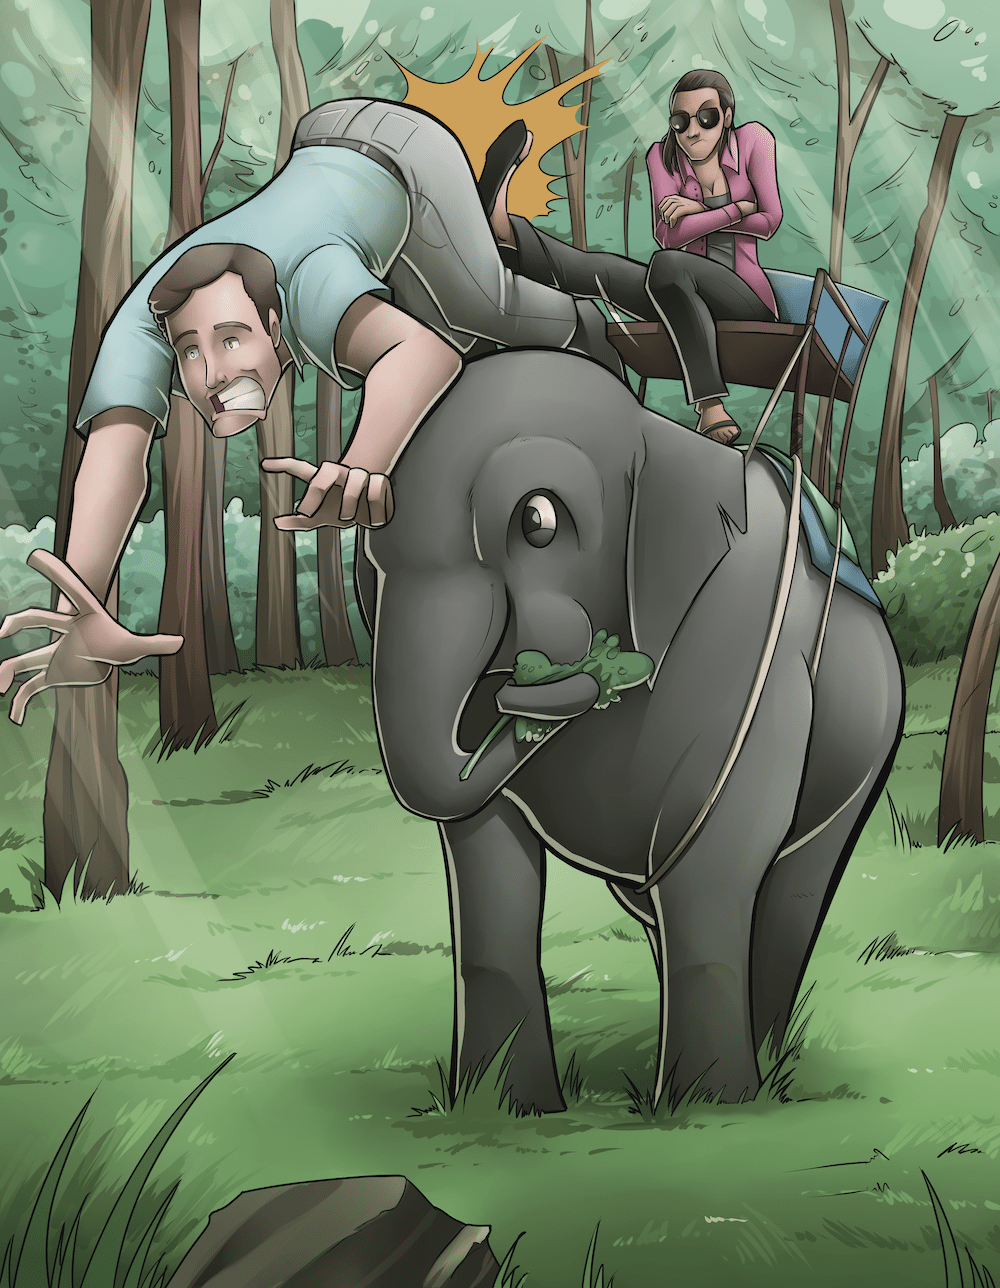 James and Jacqueline riding the elephant by Silvadoray via ArtCorgi.png